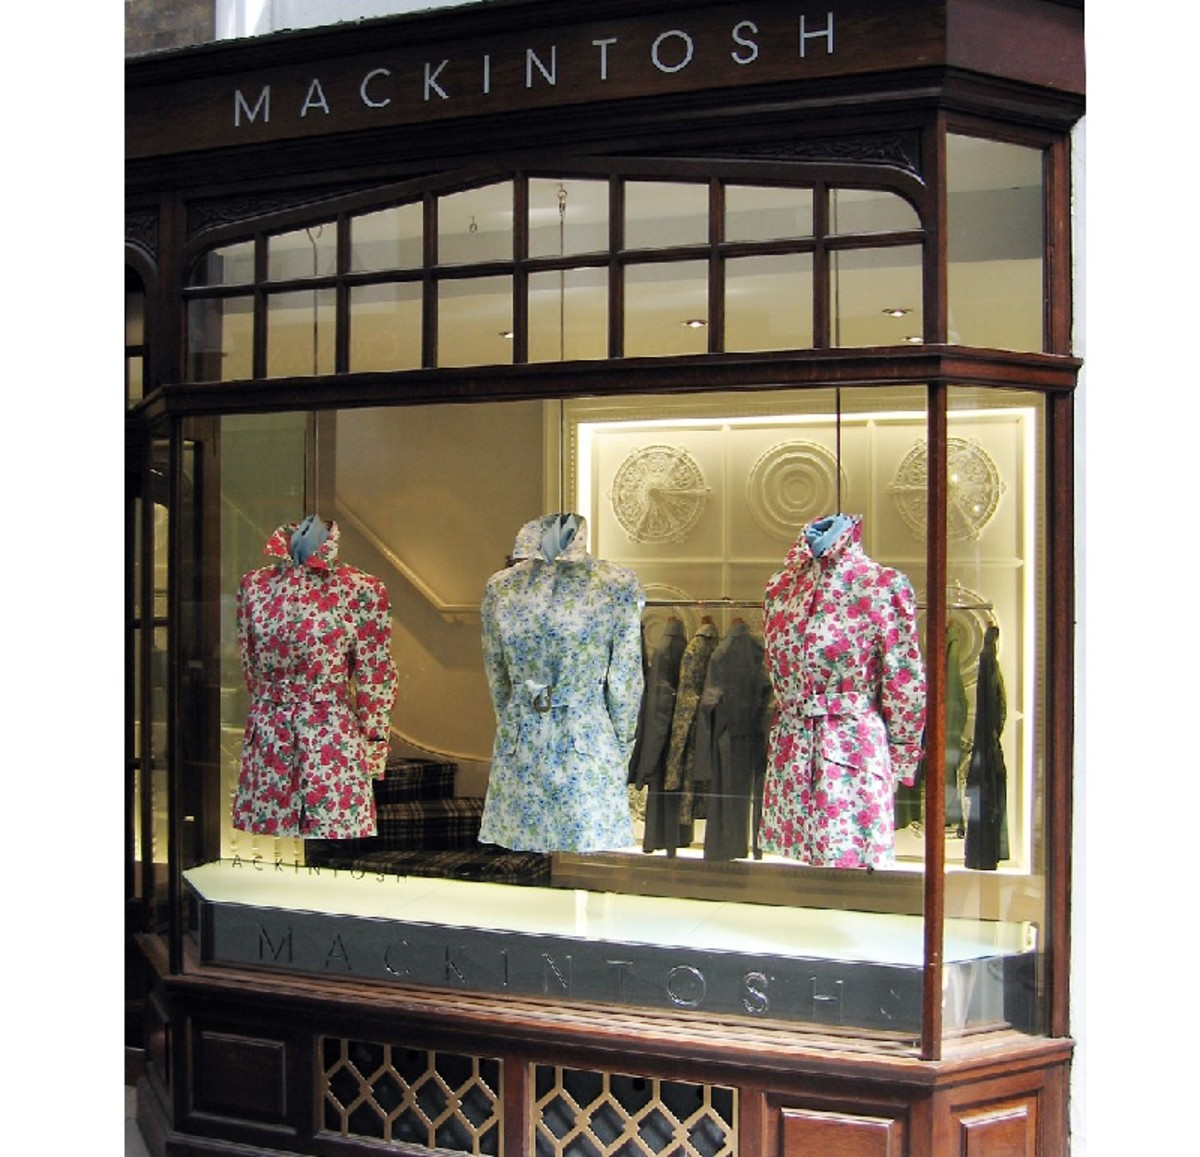 A shop display for the Mackintosh brand in upmarket Burlington Arcade, London.